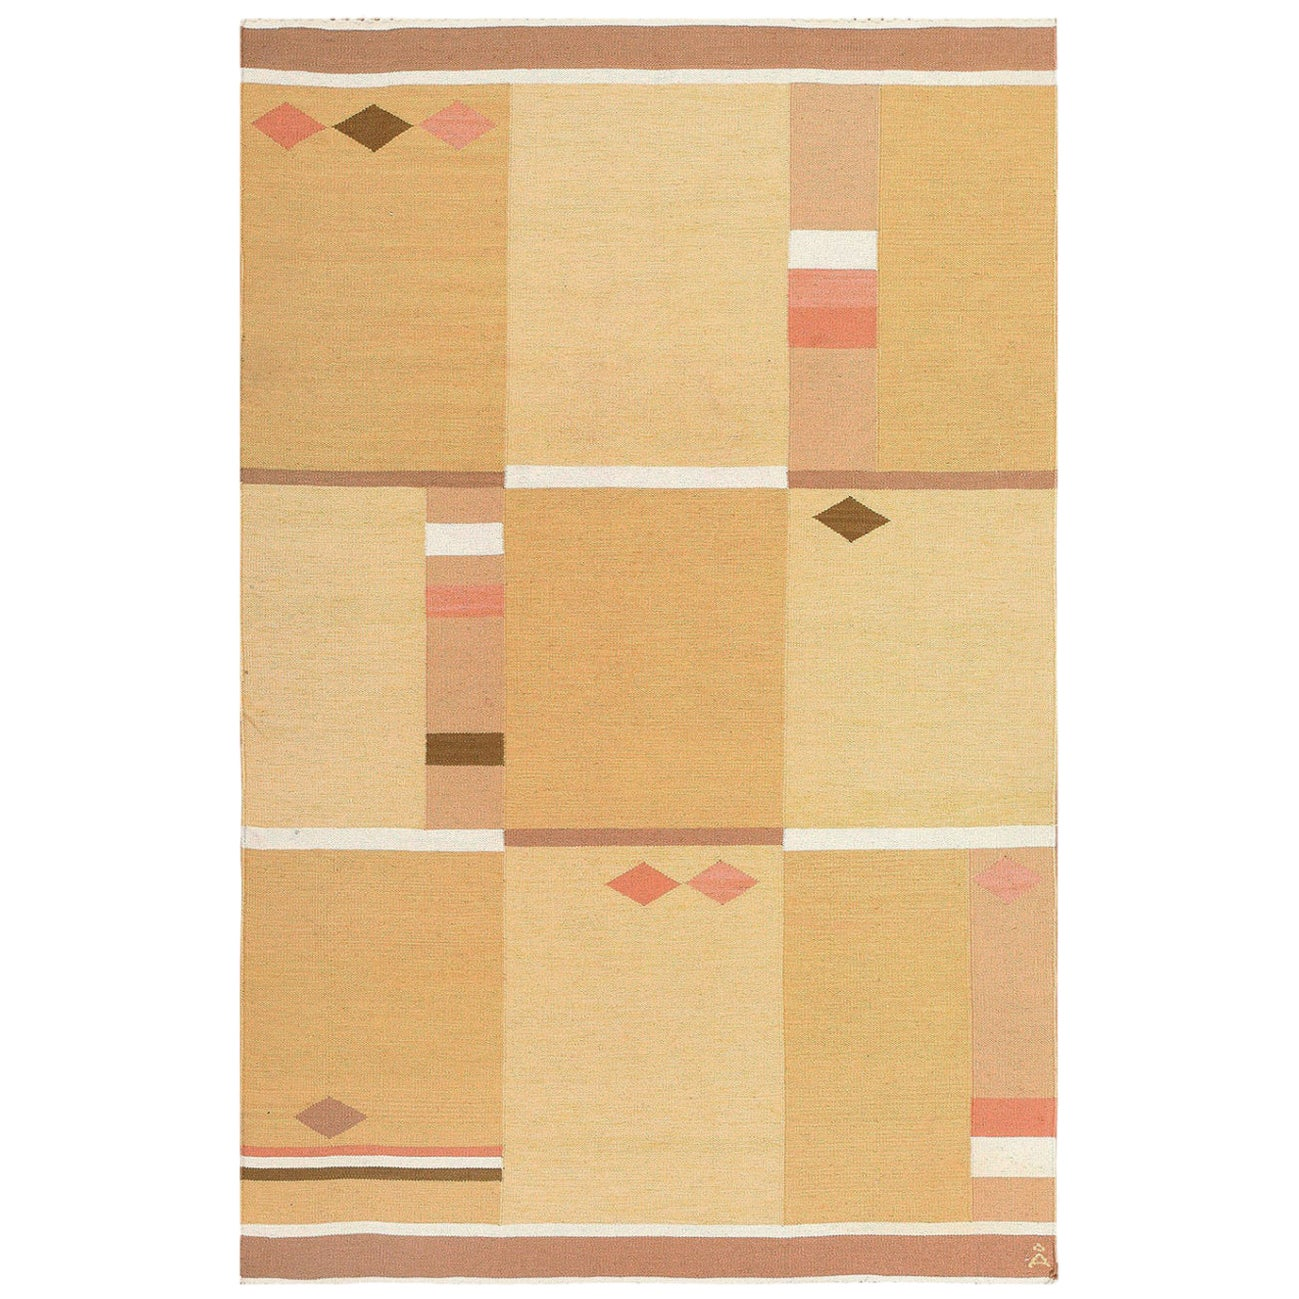 Vintage Swedish Rug by Anna Joanna Angstrom. Size: 4 ft 5 in x 6 ft 7 in